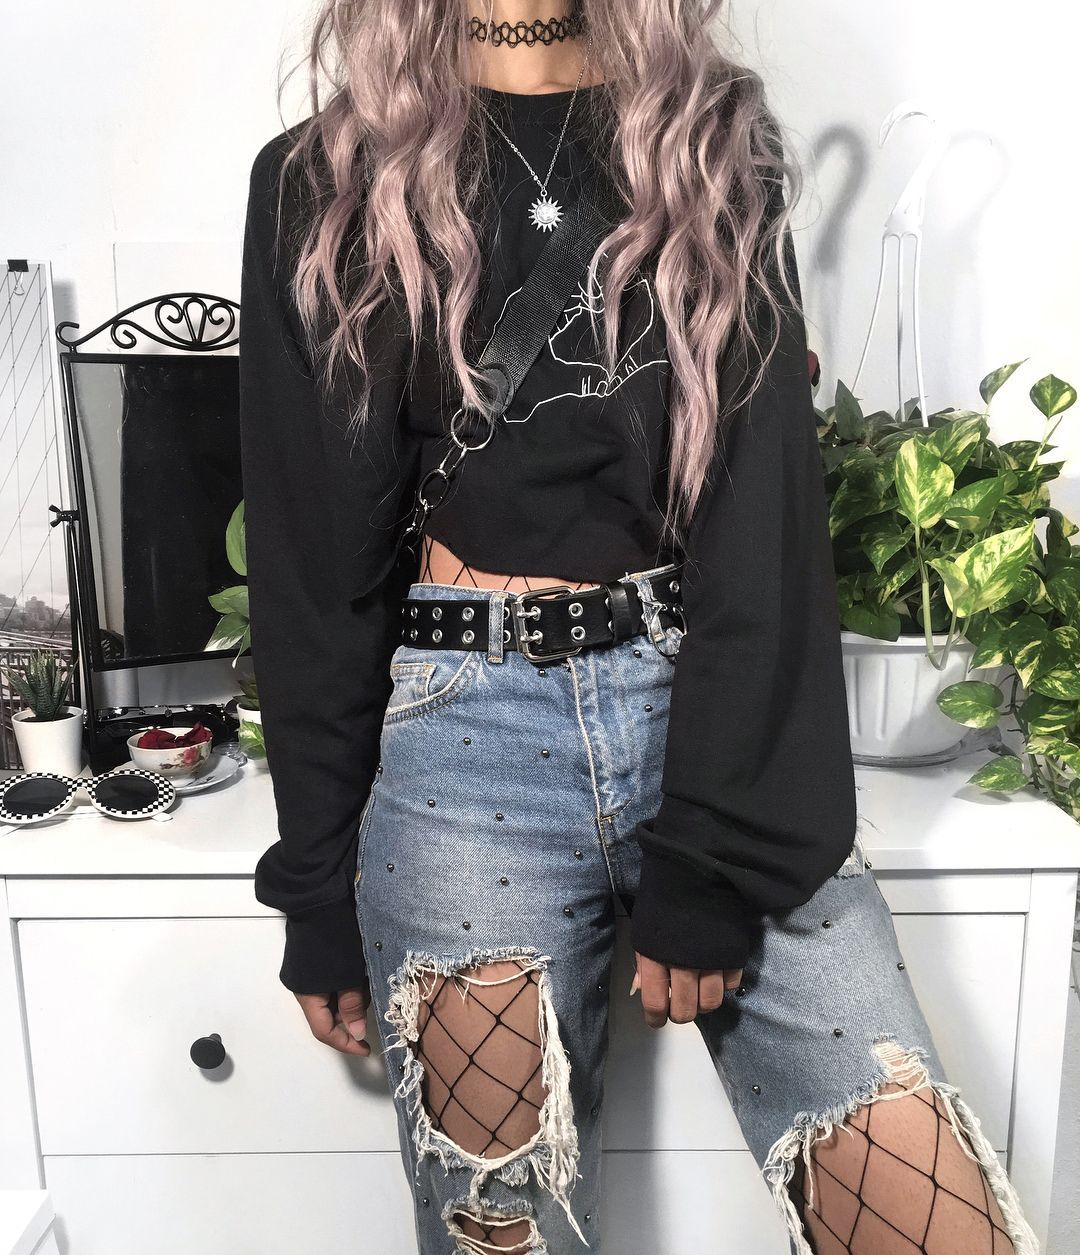 Black Sweater In Summer So Smart Liz Grunge Grungestyle Grungefashion Grungeaest Aesthetic Grunge Outfit Aesthetic Clothes Edgy Outfits